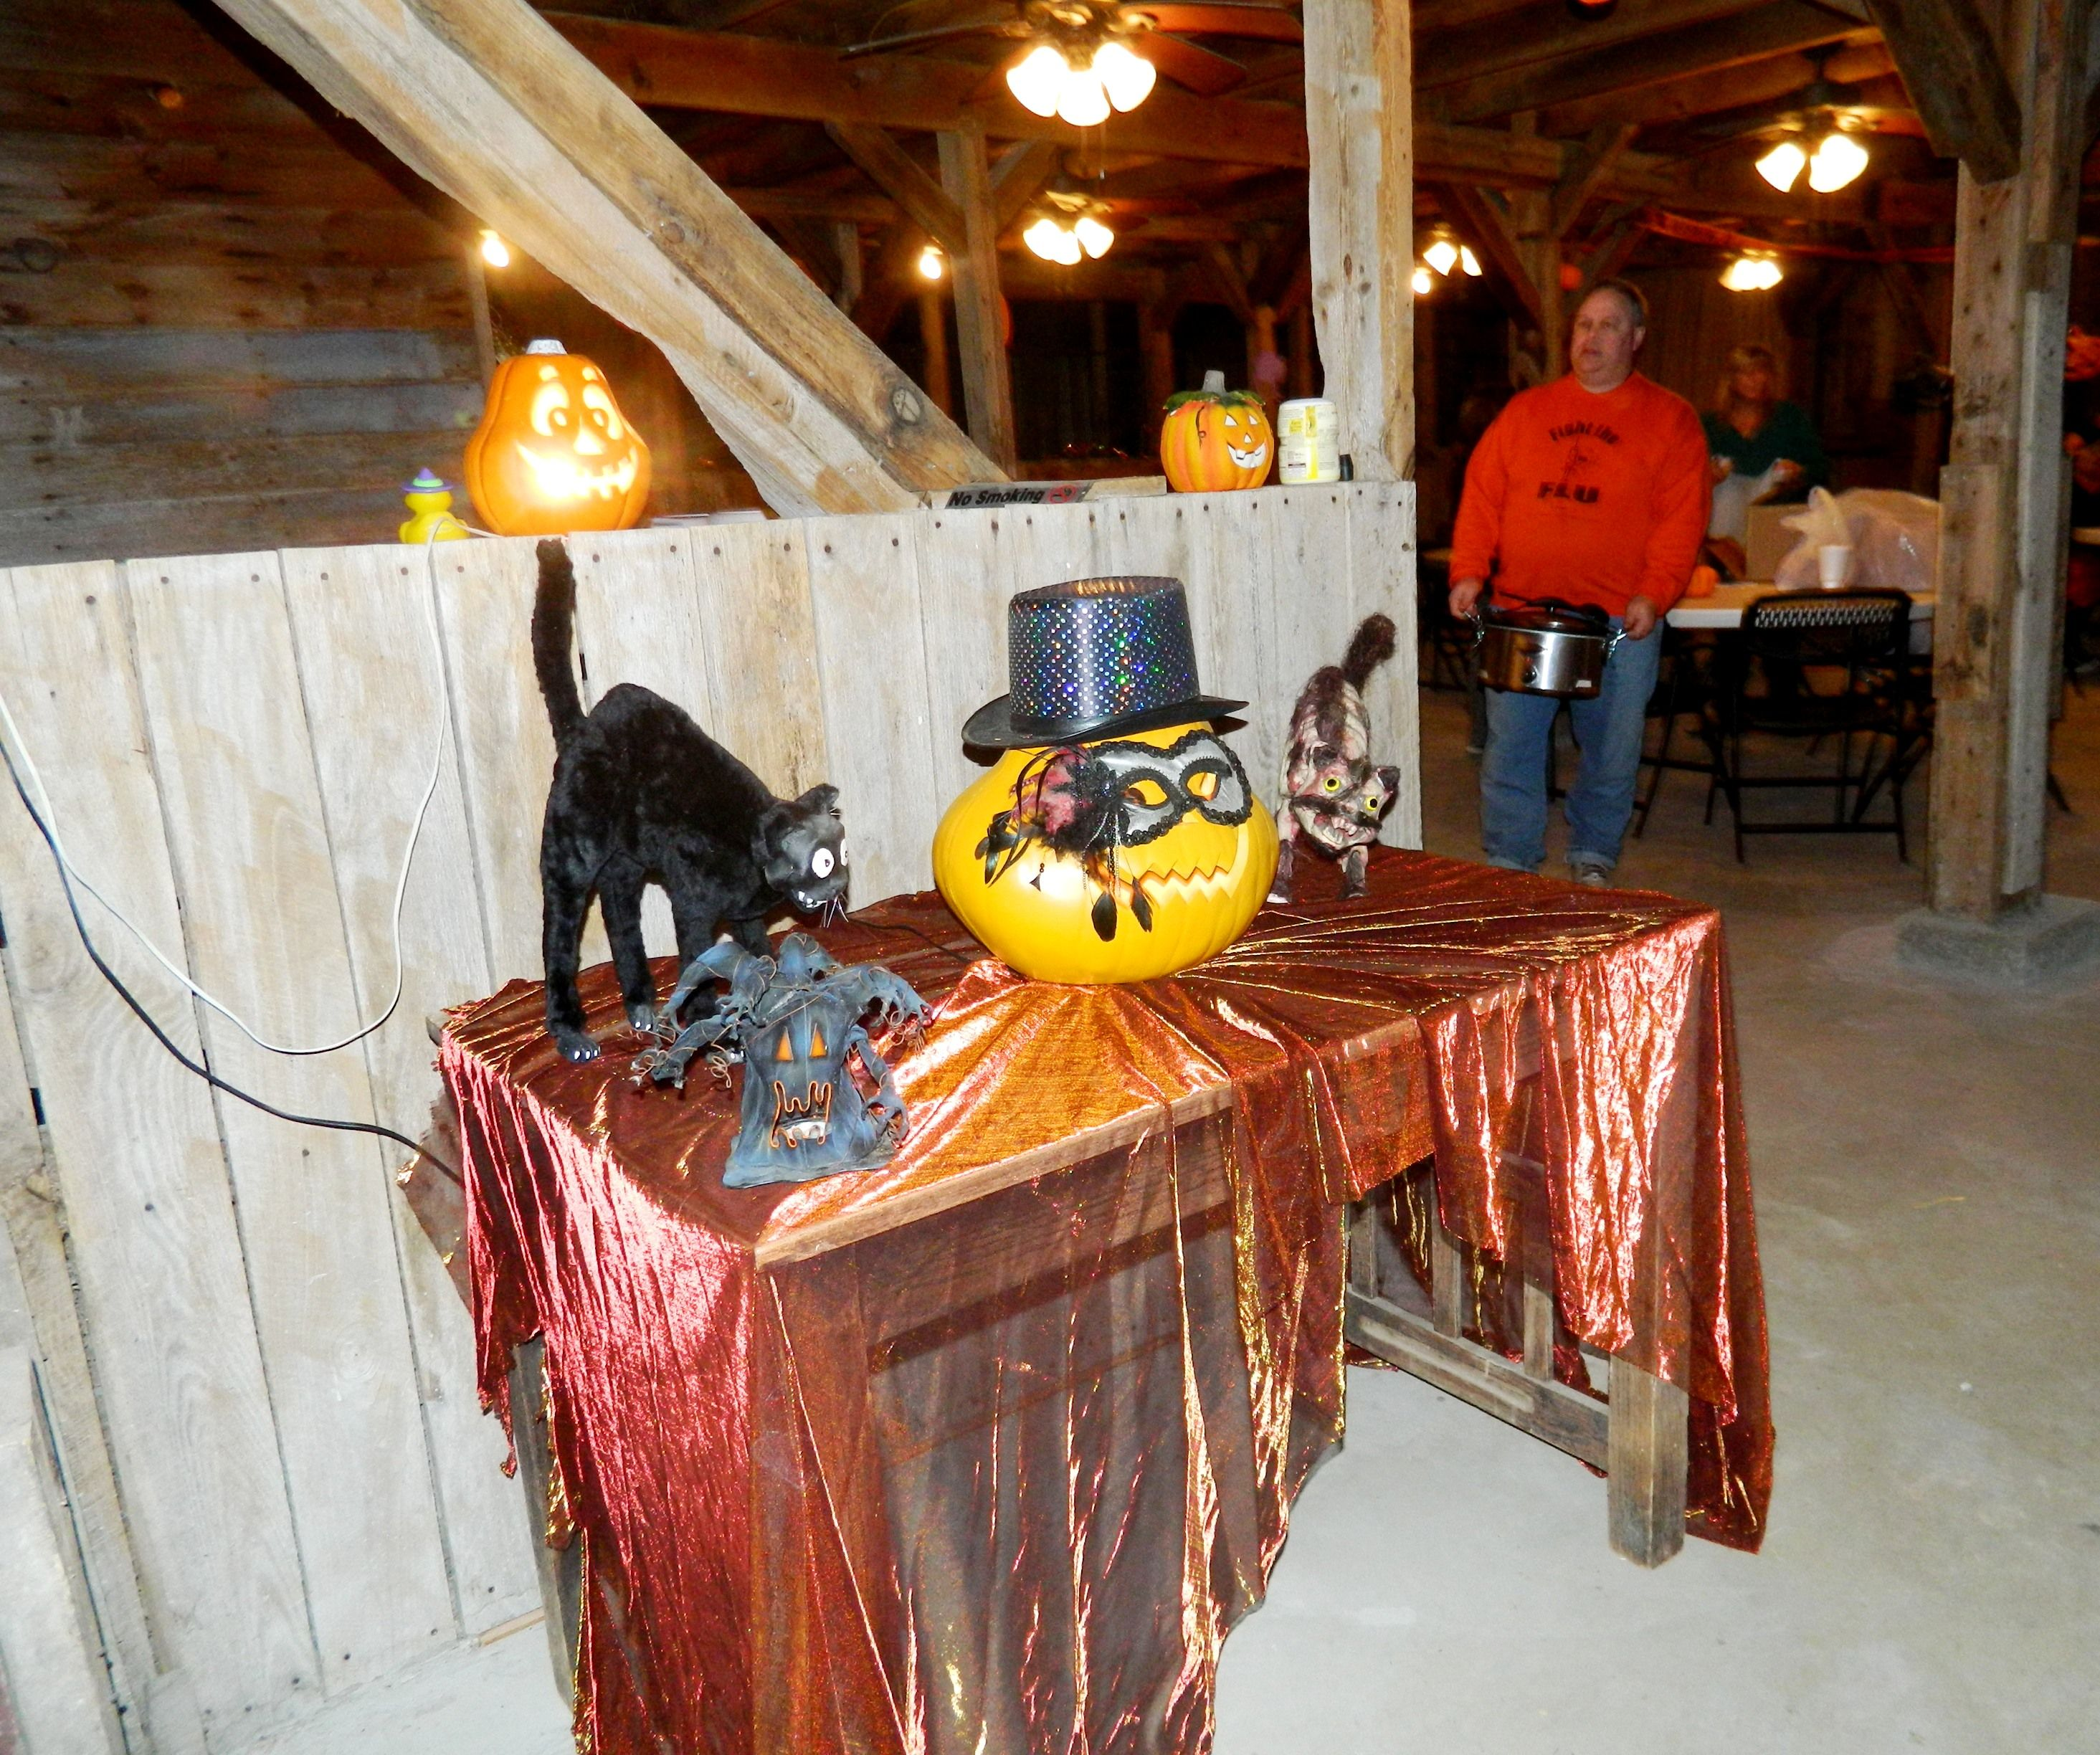 Church group's Halloween party inside the Wedding Barn/Events ...